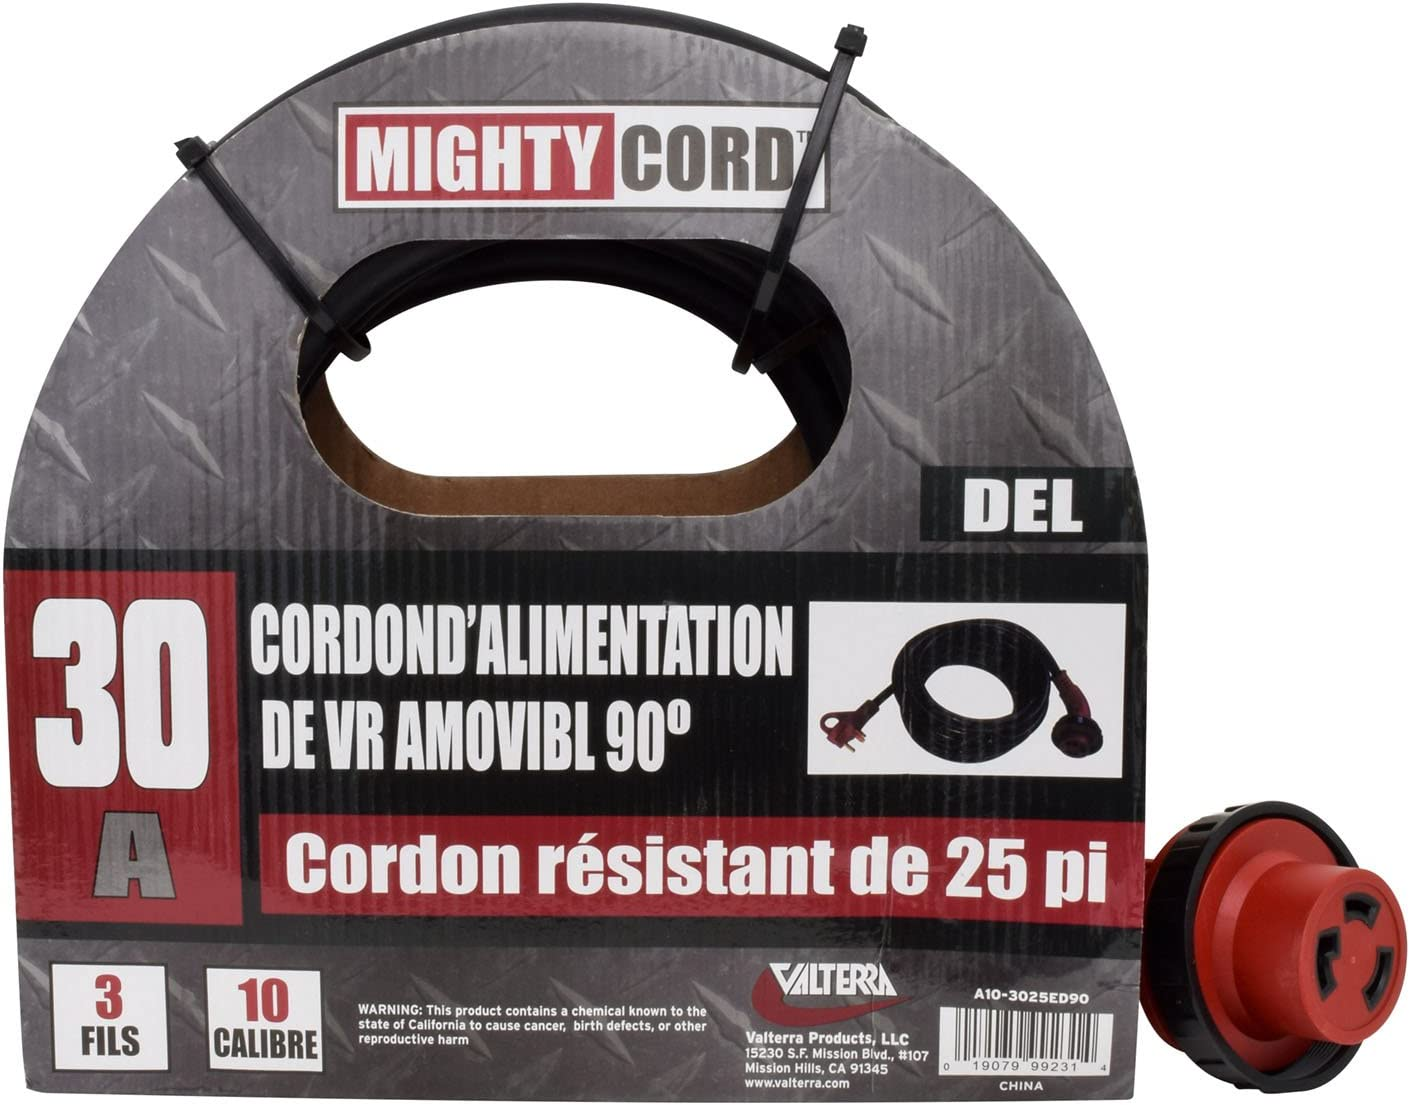 25-Foot Cord for RV Valterra Mighty Cord RV 50-Amp 90-Degree Detachable Power Cord Red